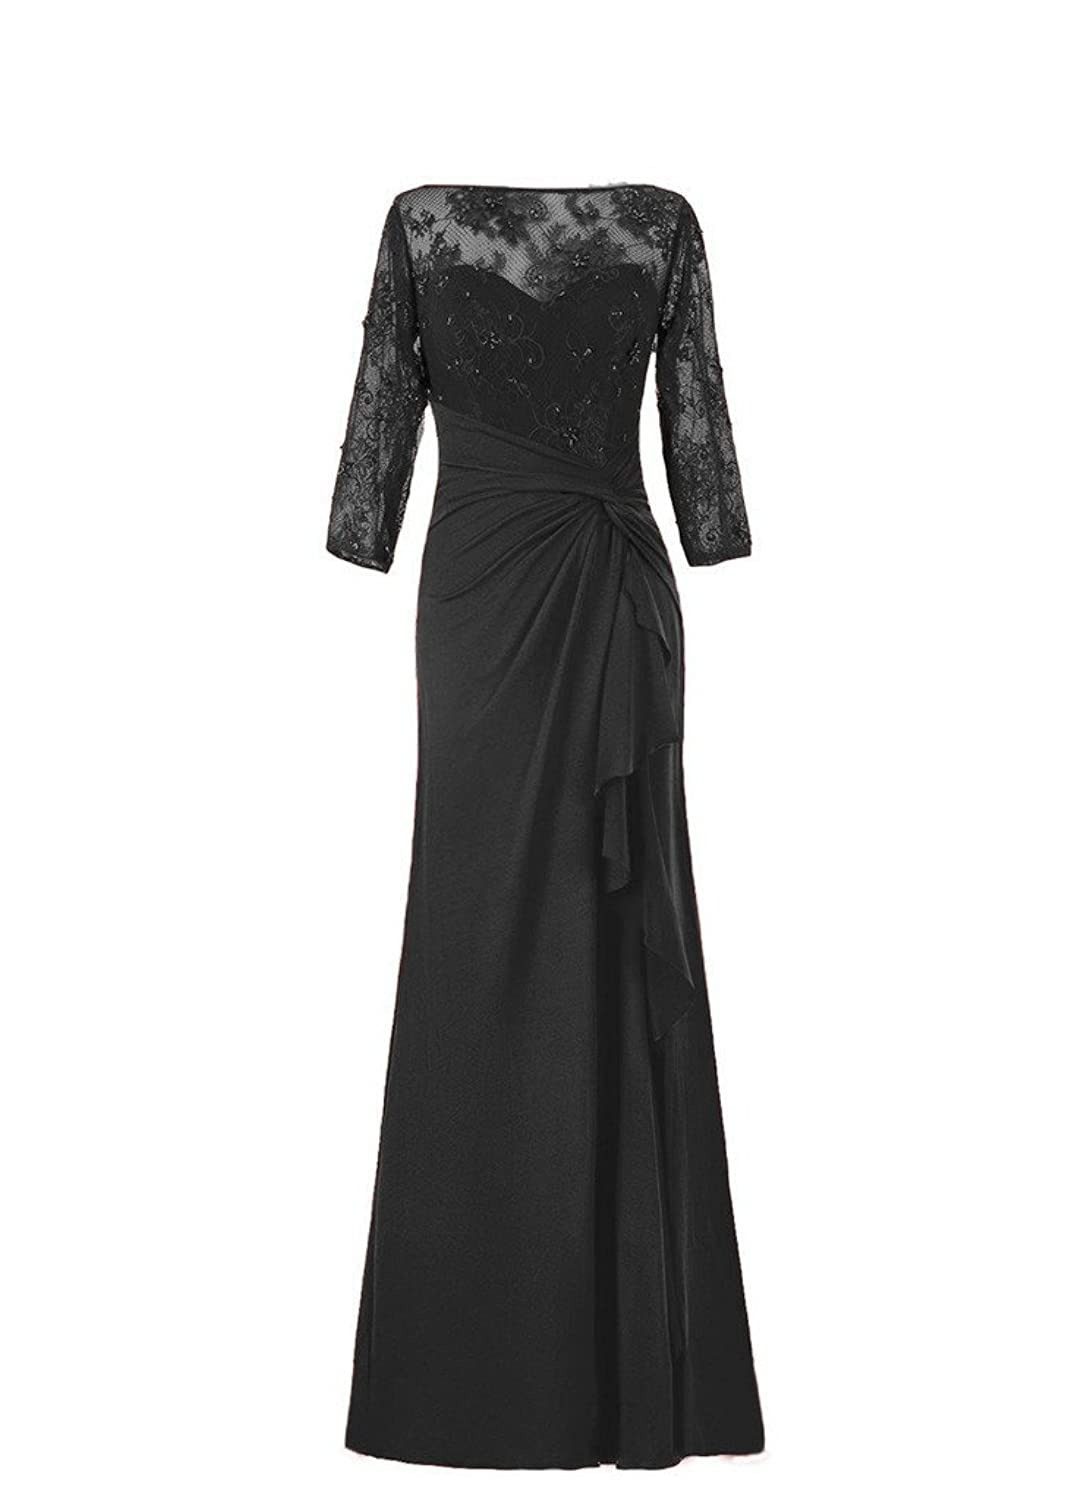 HWAN Long Sleeve Chiffon Lace Mother of Bride Dresses Plus Size Formal Gowns